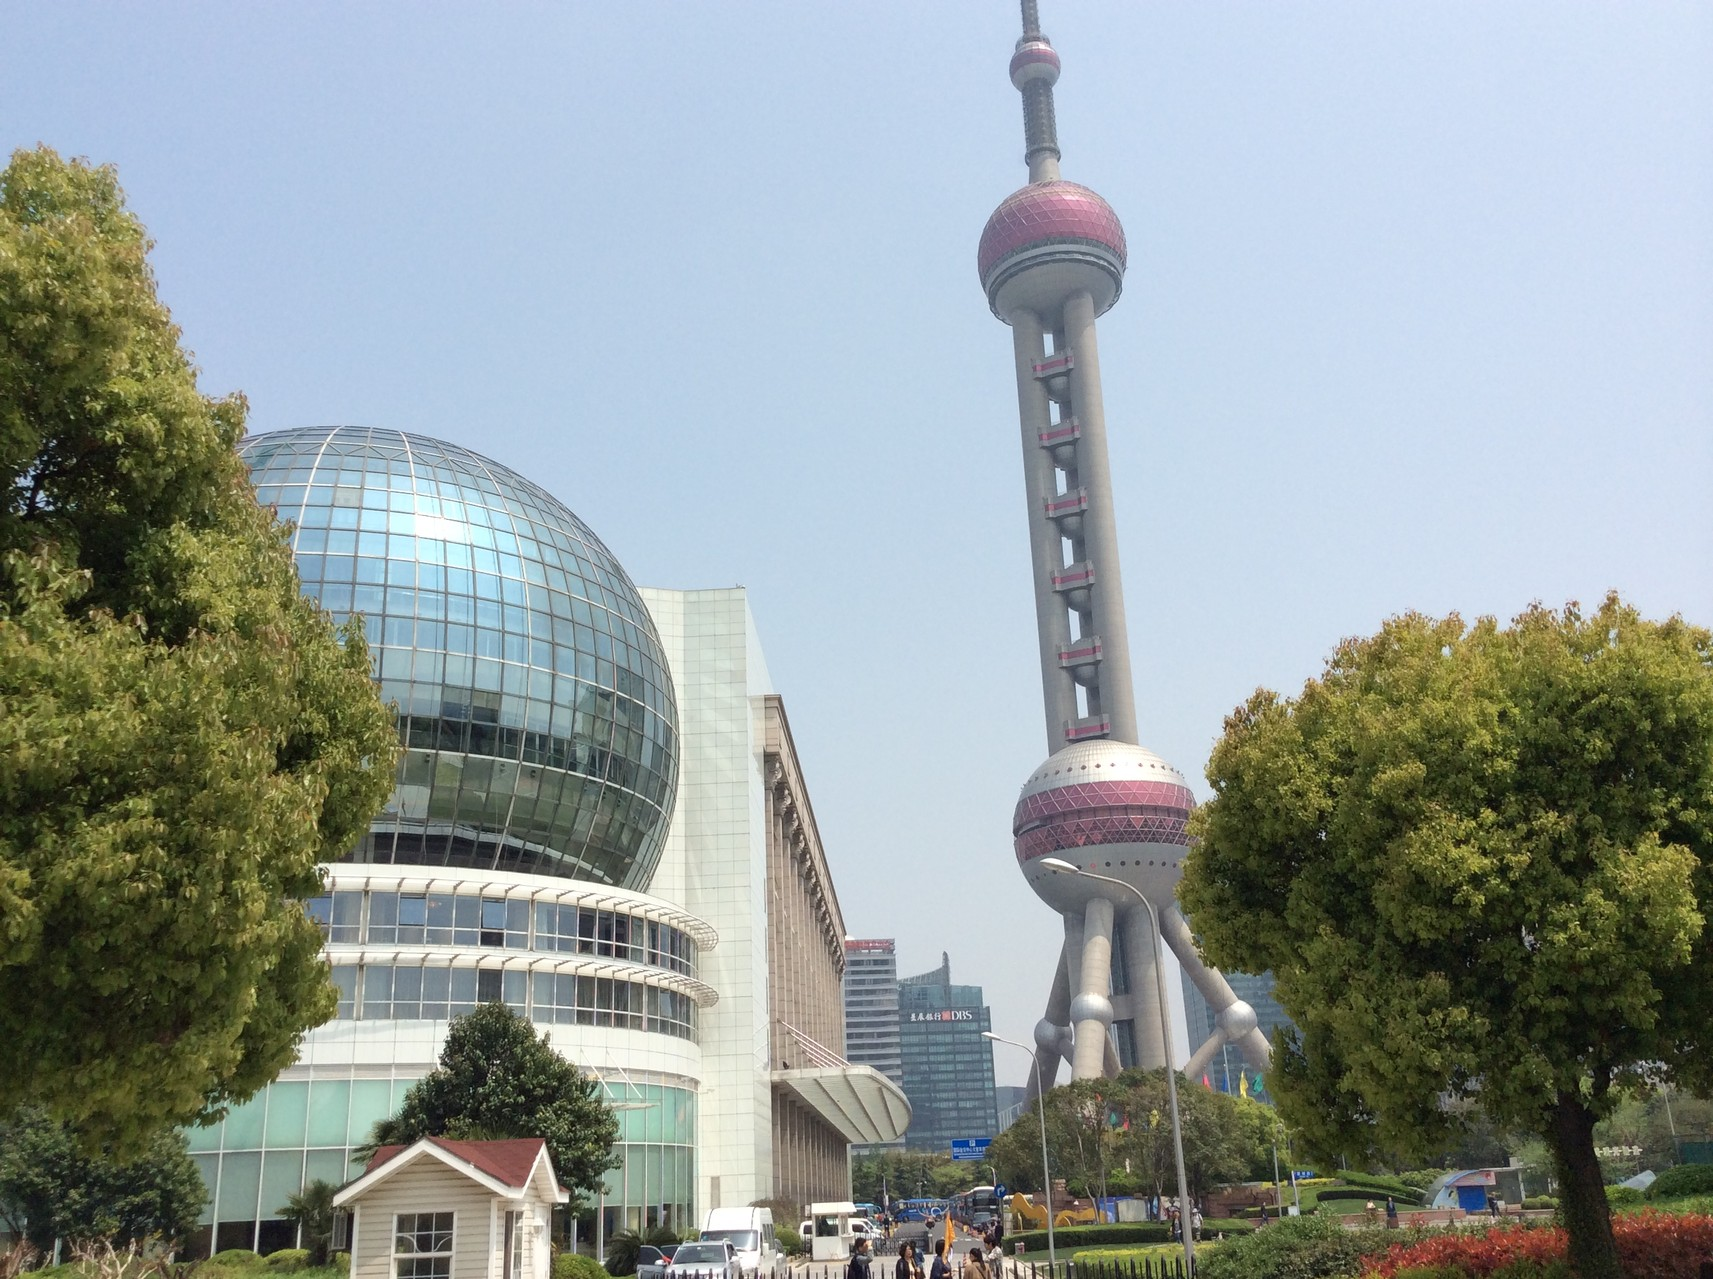 Pudong - International building & Pearl Tower